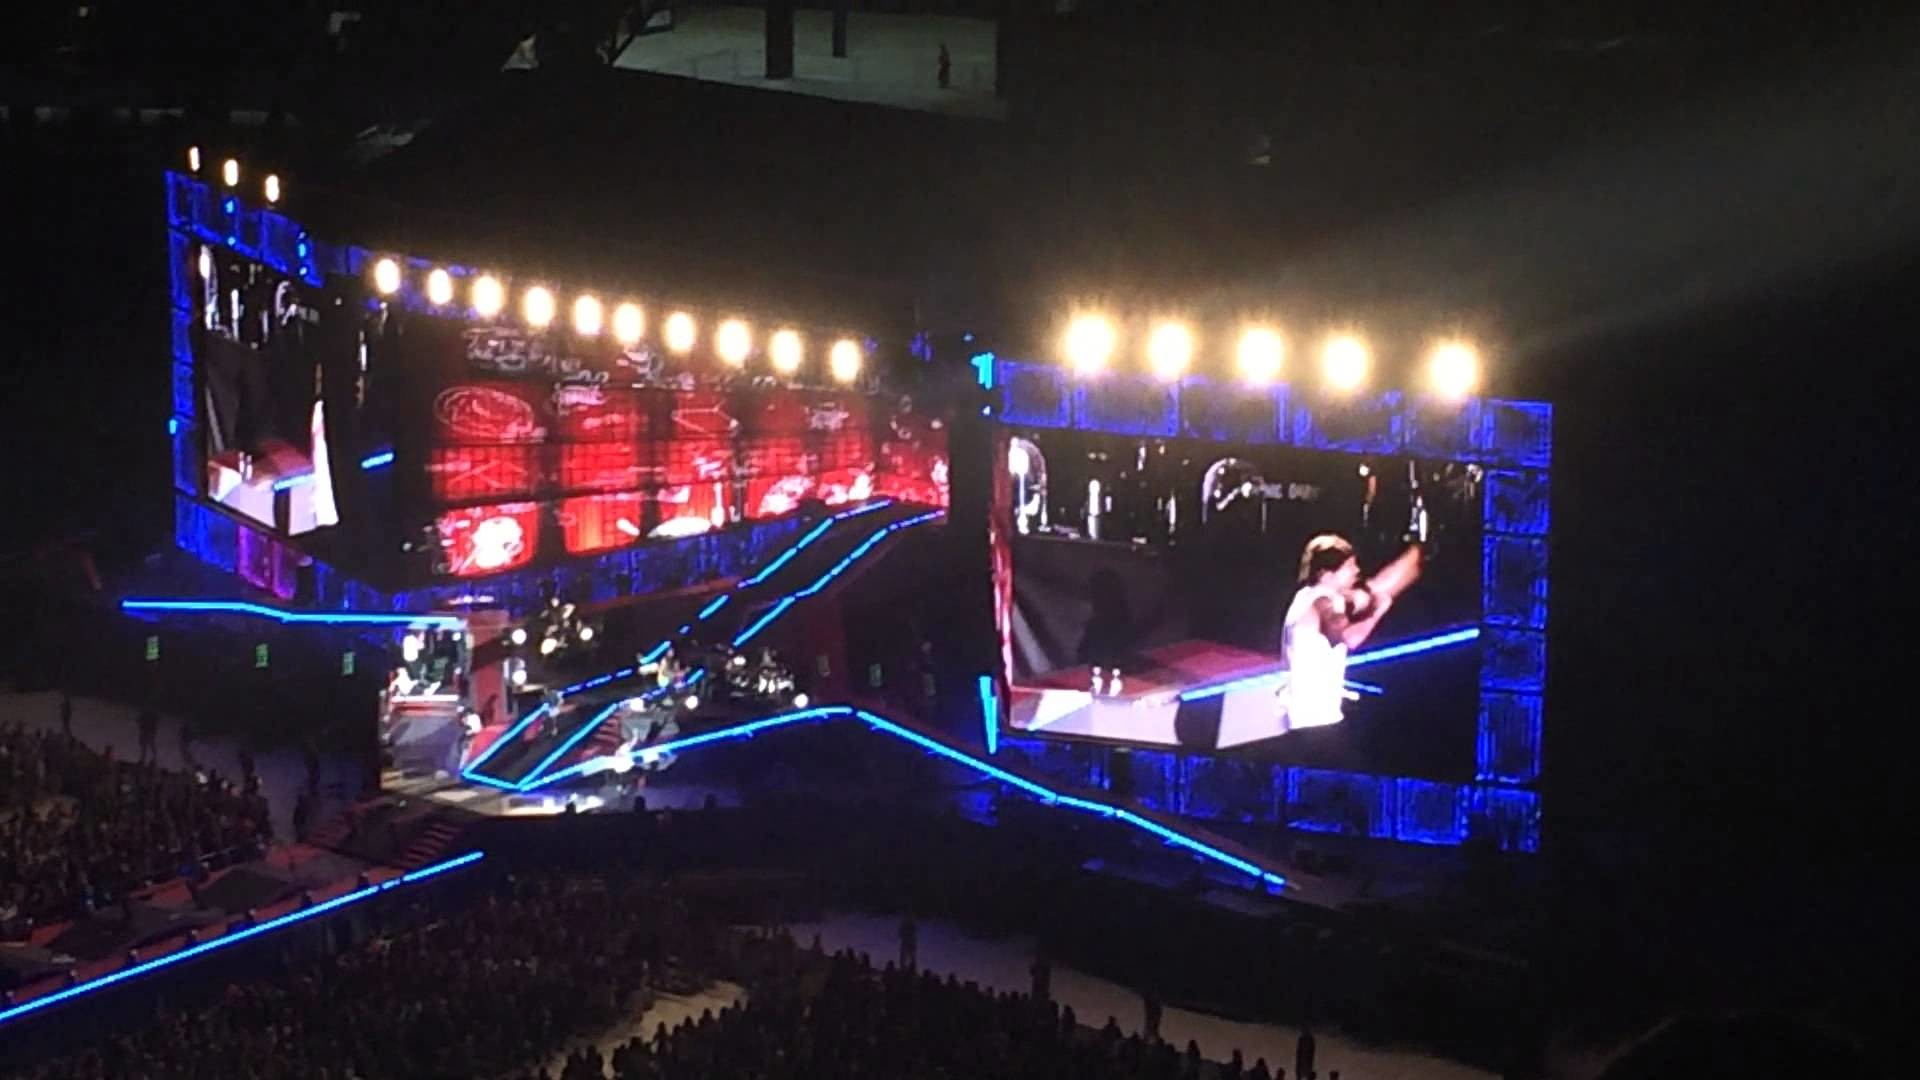 1920x1080 One direction sweet home Alabama and thanking the band Gillette stadium  boston ma 2014 one direction